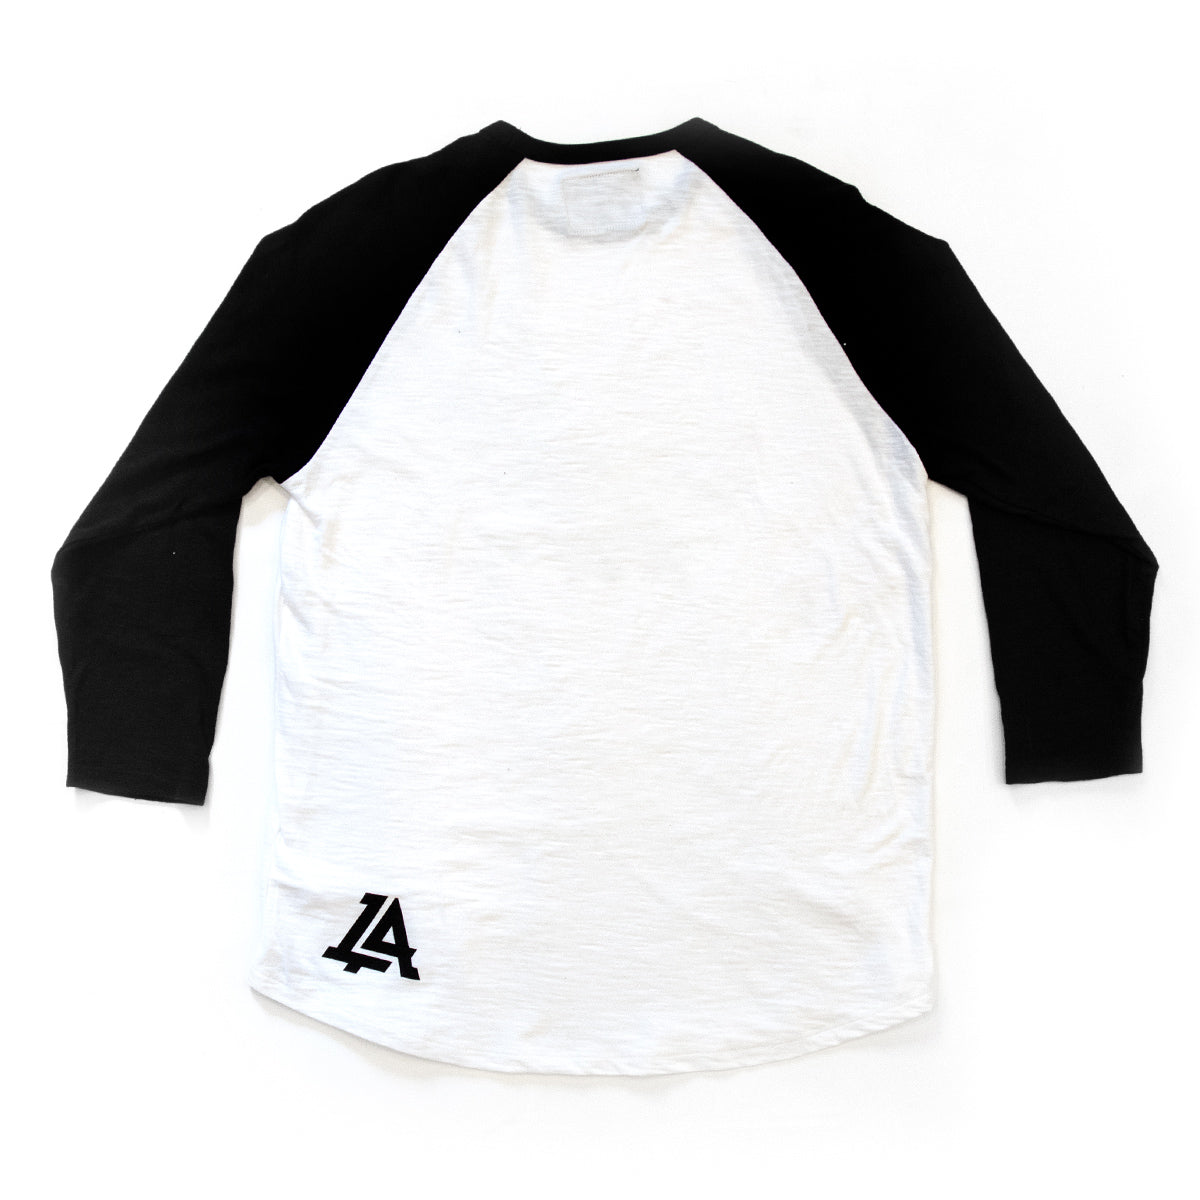 Lost Art Canada - black and white LOST monogram baseball tee back view